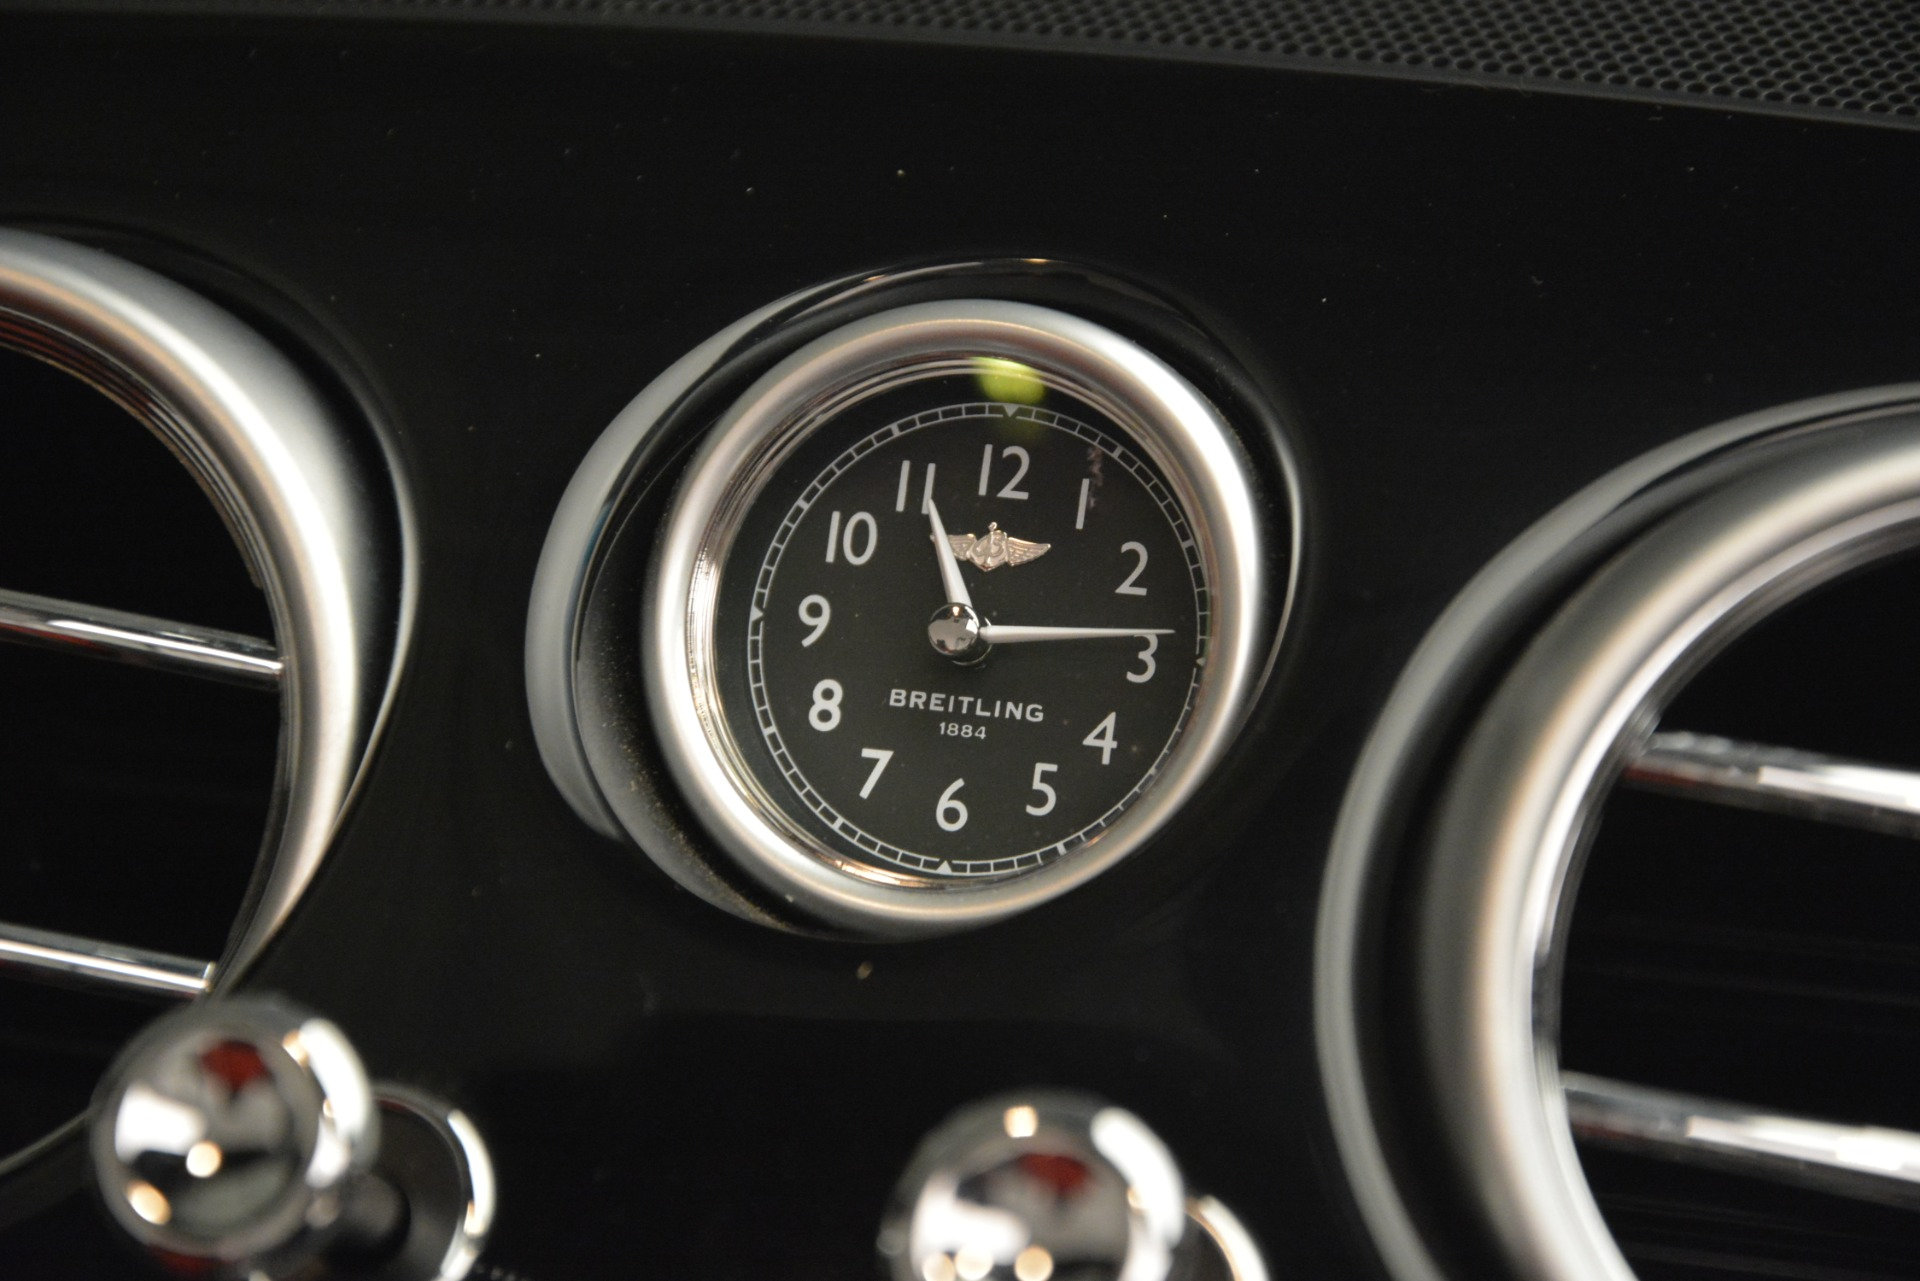 Used 2014 Bentley Continental GT V8 S For Sale In Greenwich, CT 3011_p27